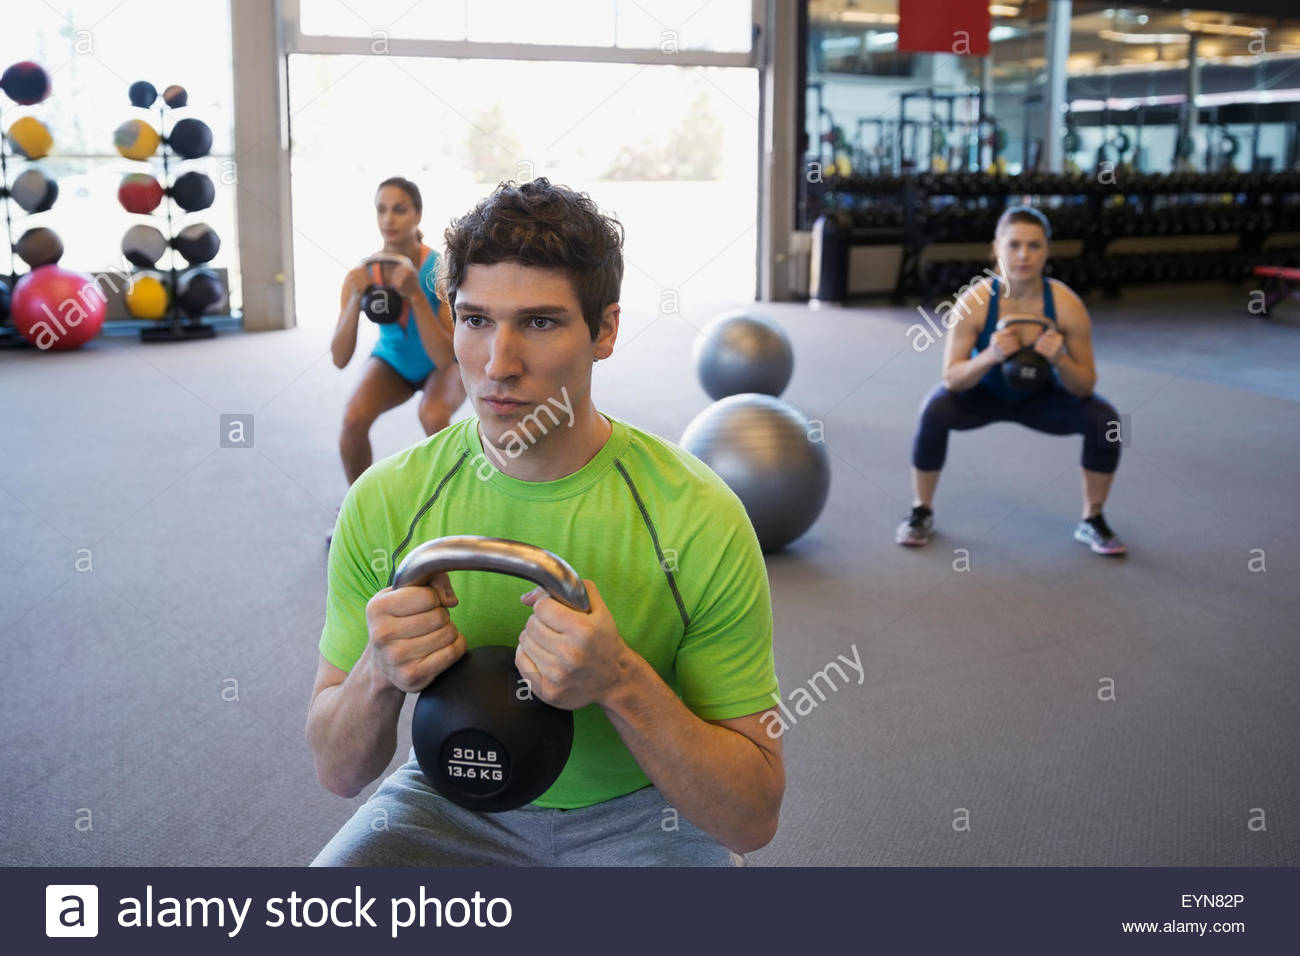 Serious exercise class doing kettlebell squats at gym - Stock Image